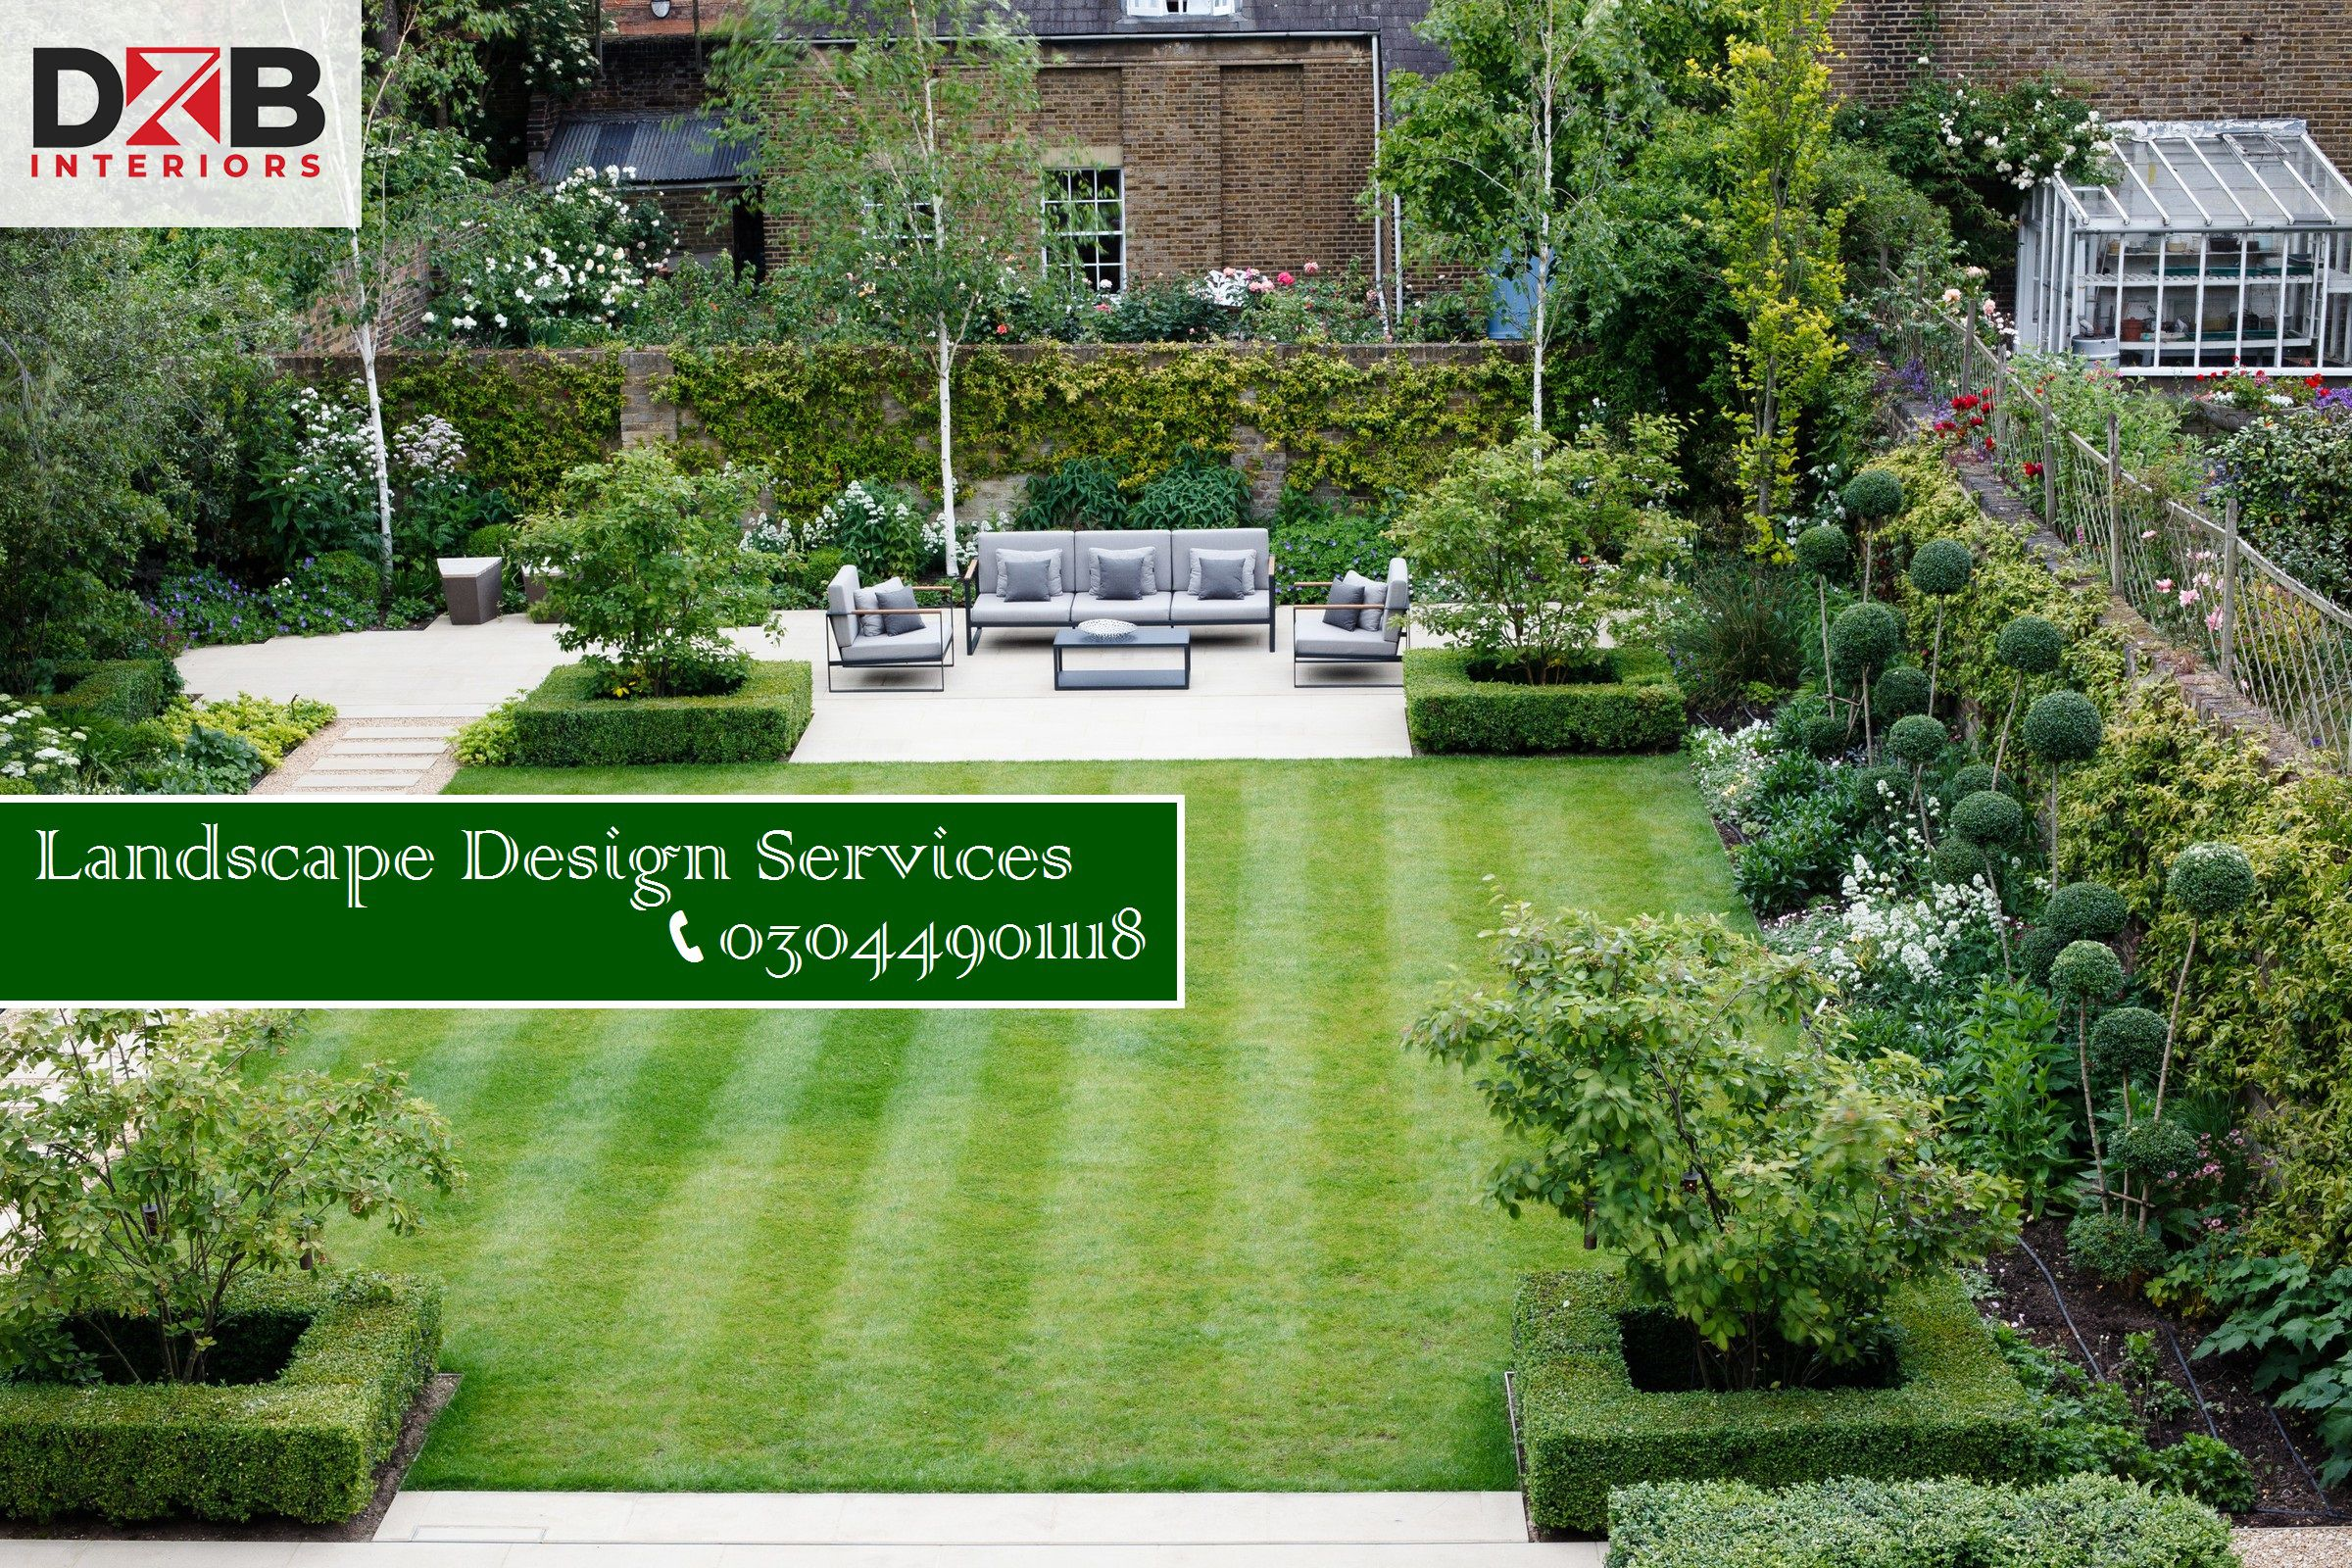 Landscape Design Services In Lahore Islamabad Front Backyard Garden Landscape Design Services Front Yard Garden Design Landscape Design